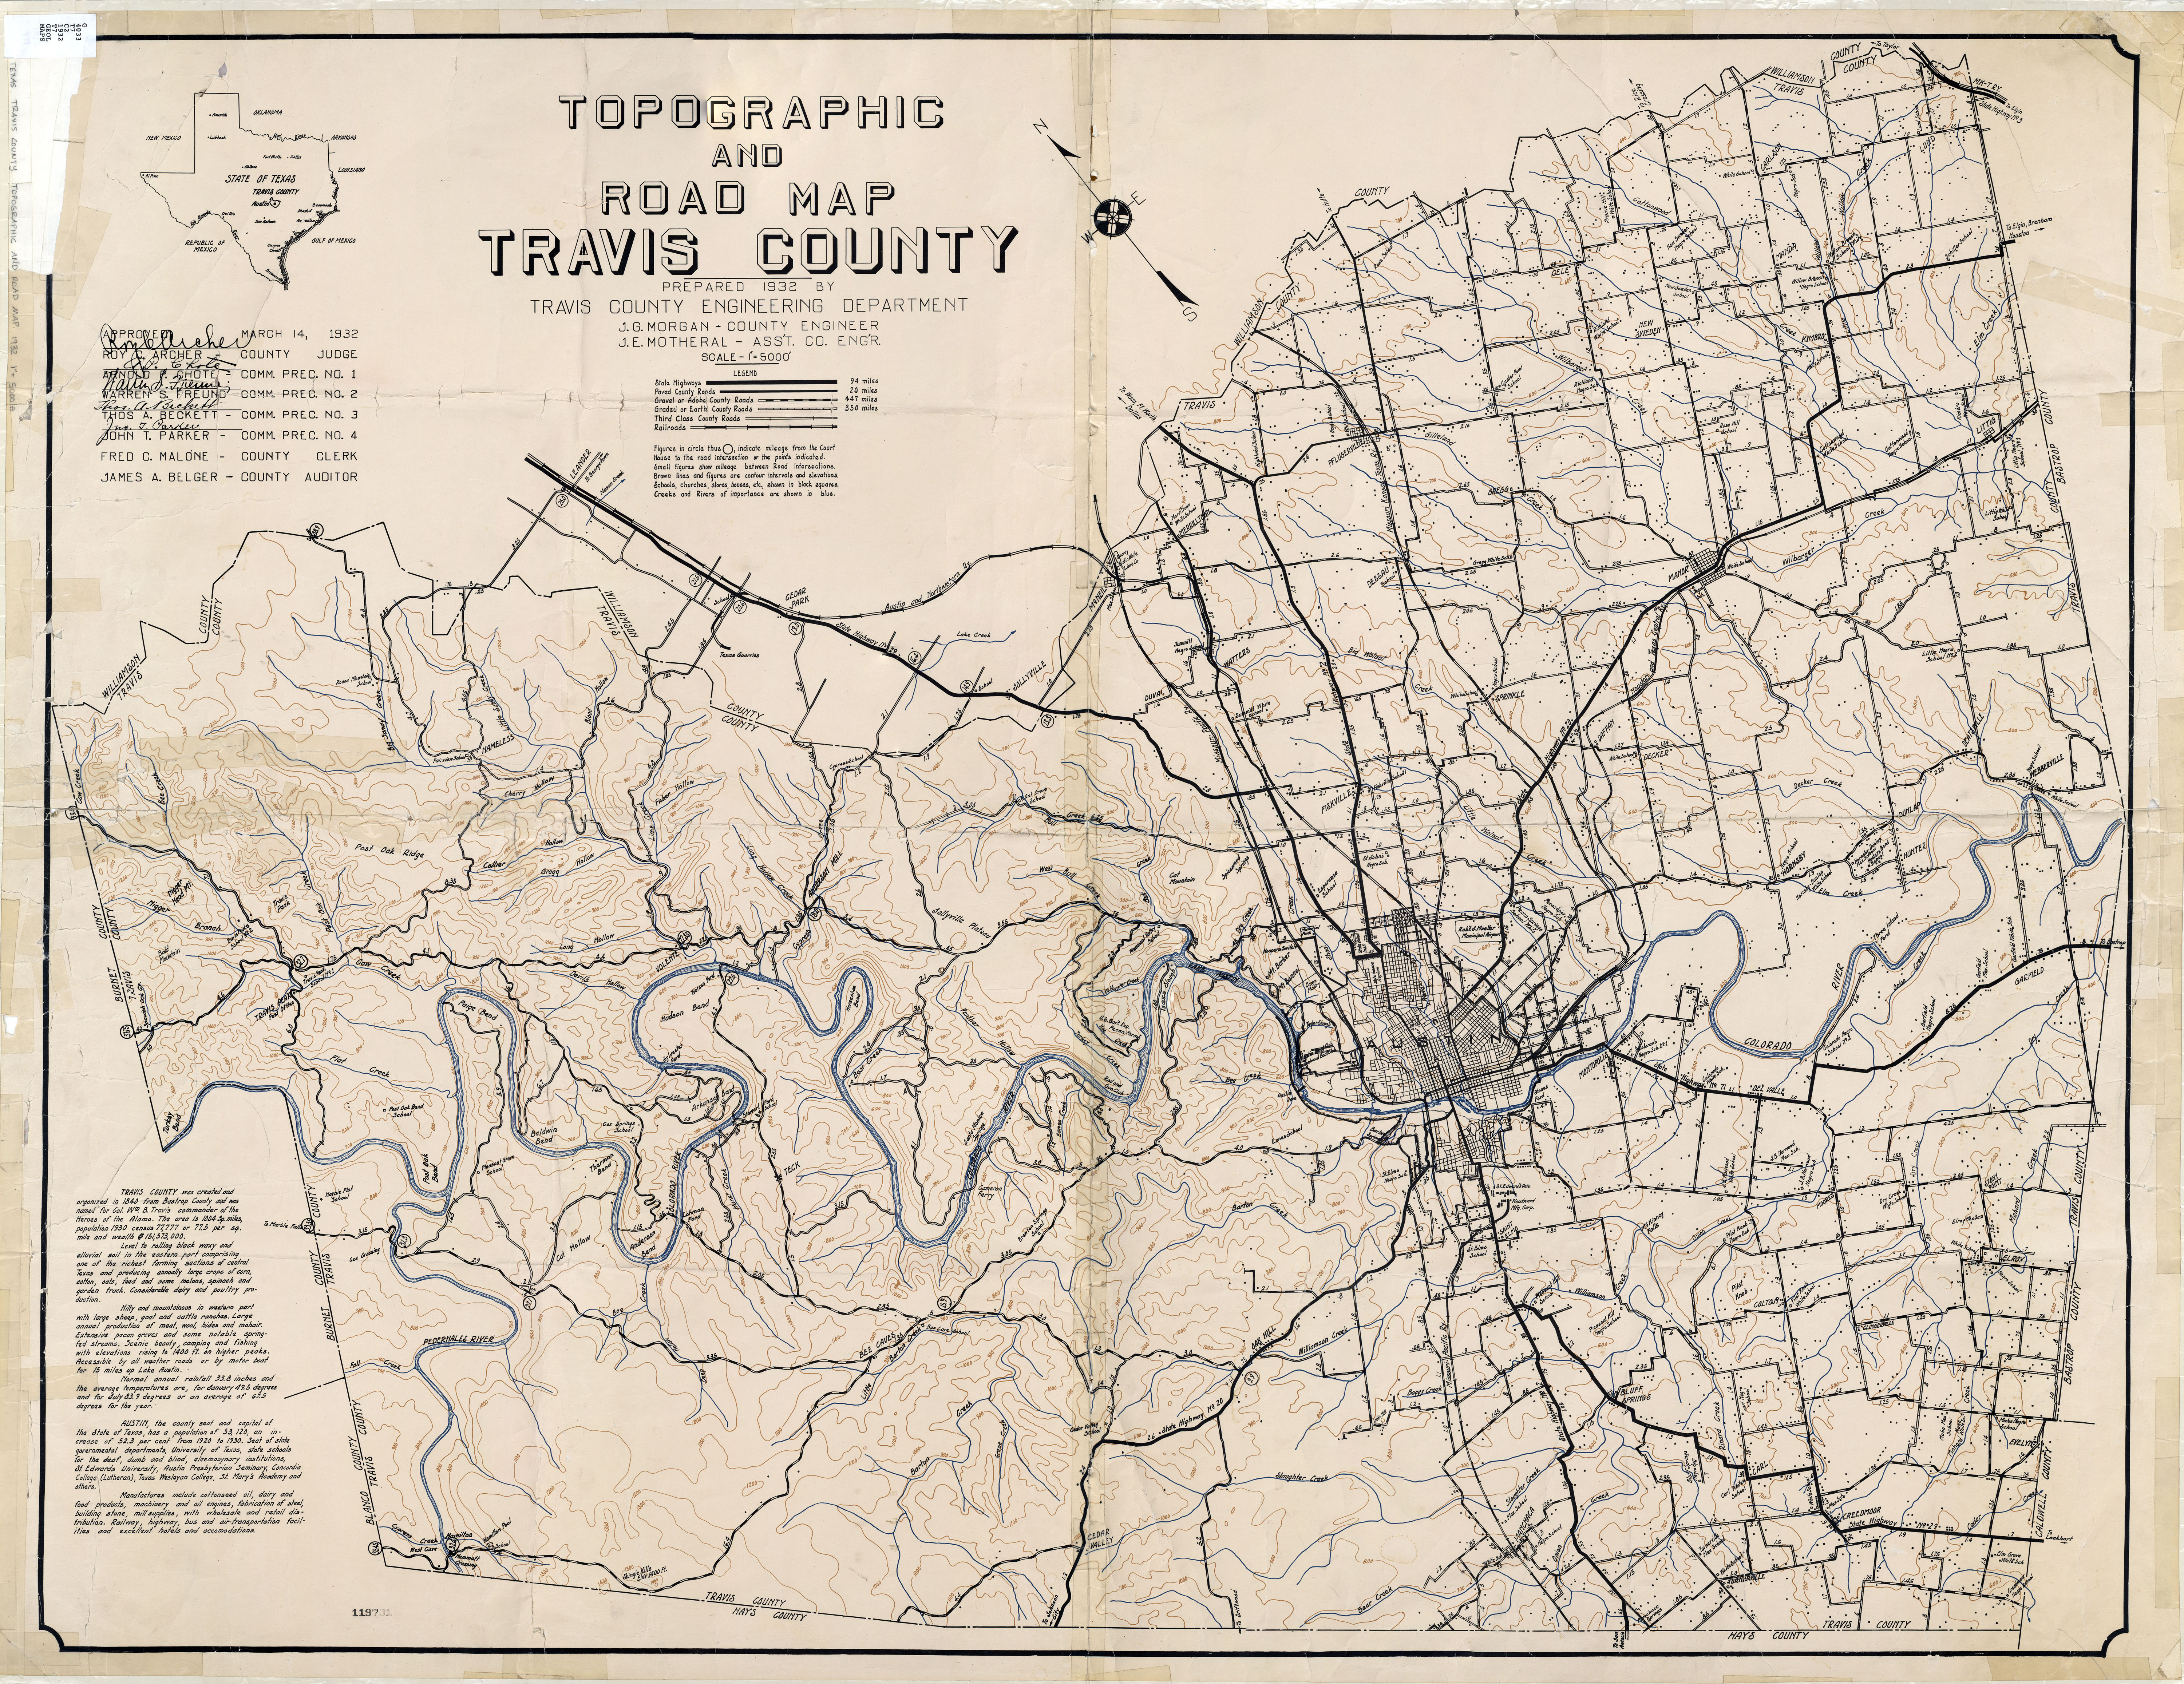 Texas Cities Historical Maps - Perry-Castañeda Map ... on religion maps of texas, antique nevada map, railroad map in texas, rare maps of texas, decorative maps of texas, antique alaska map, ancient maps of texas, antiques in texas, blue maps of texas, on a map of ja ranch texas, historical maps of san antonio texas, large print road maps texas, antique show round top texas, antique show round top map, rustic maps of texas, charts of texas, agriculture maps of texas, vintage texas, printable maps north texas,